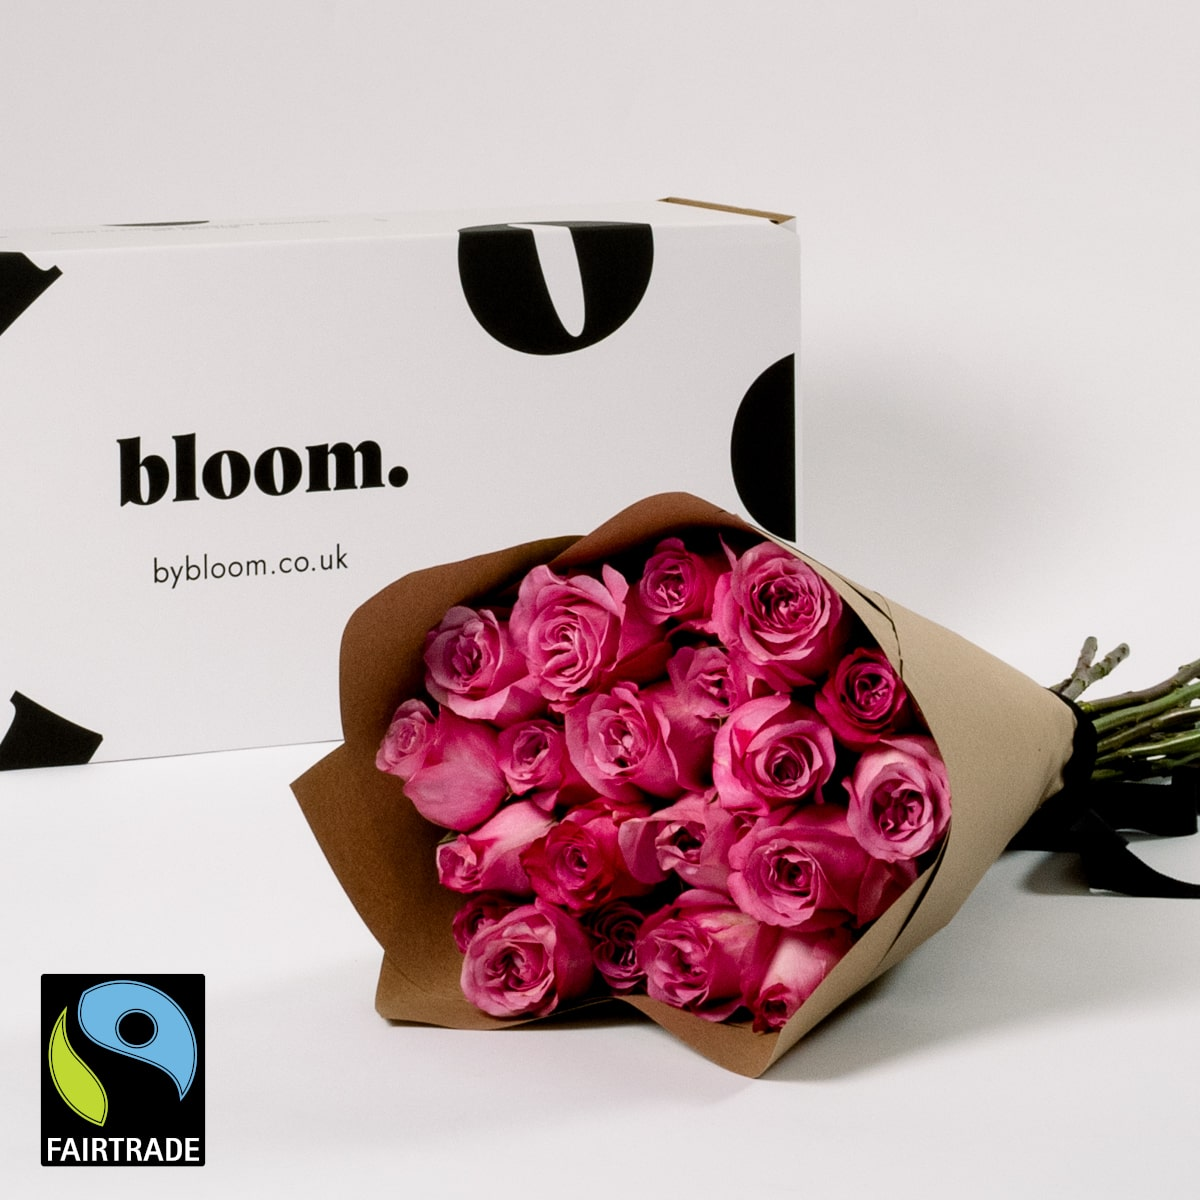 Bloom Flower Delivery | Fairtrade Cerise Pink Roses